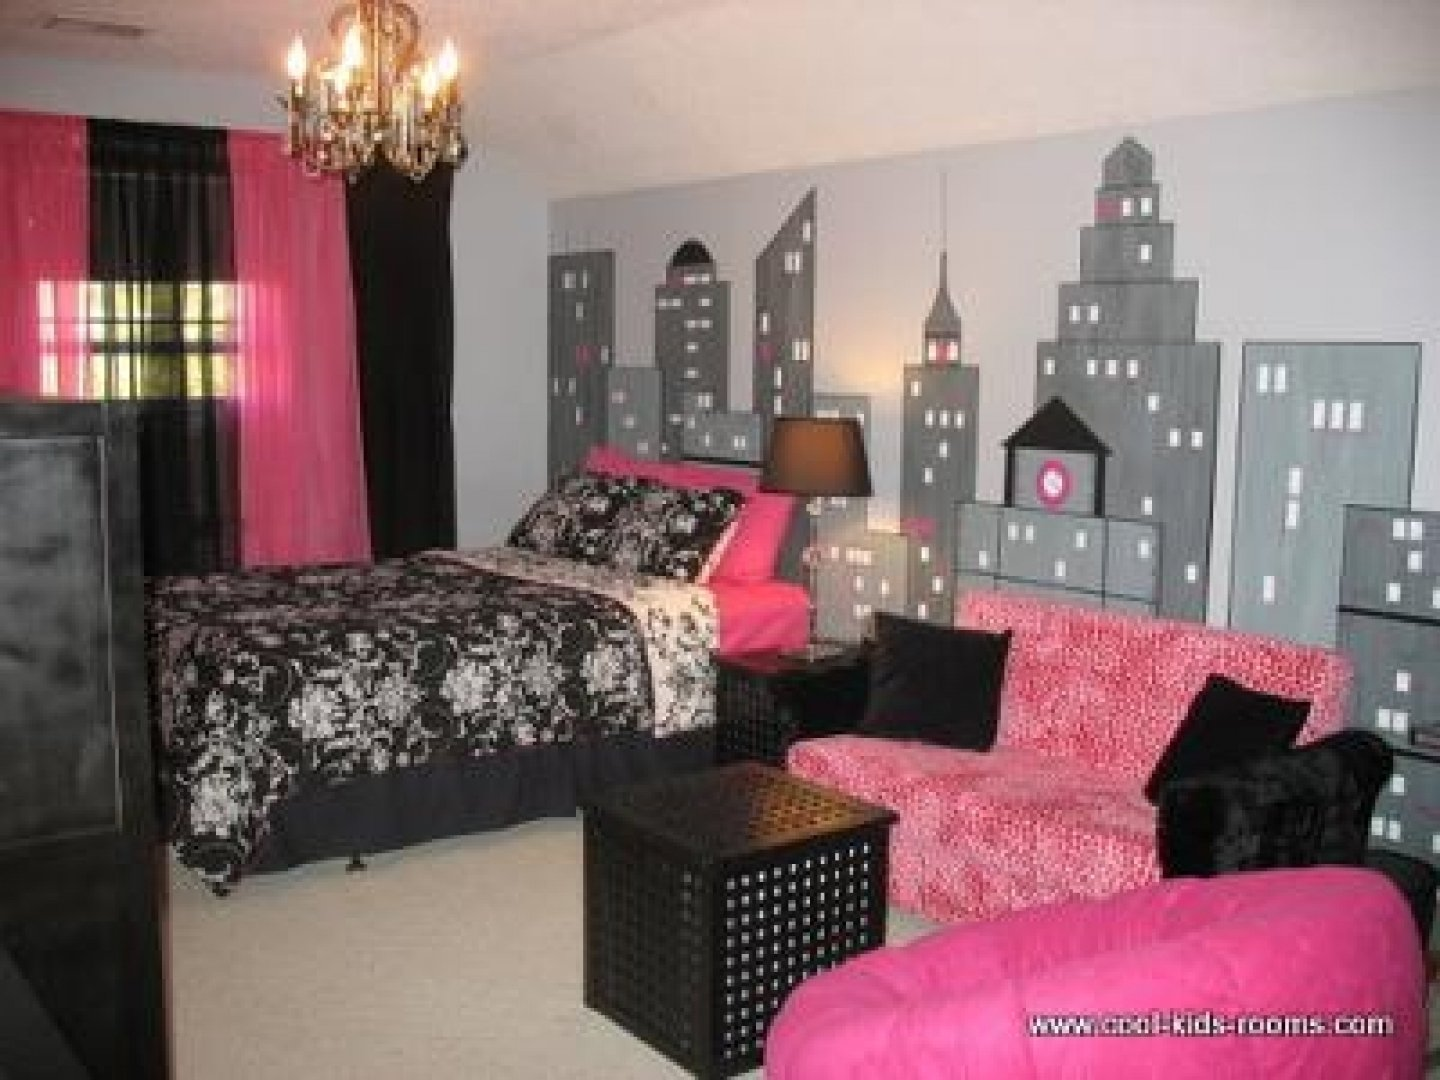 10 Nice Pink Black And White Bedroom Ideas black white and pink themed bedroom e280a2 white bedroom design 2020